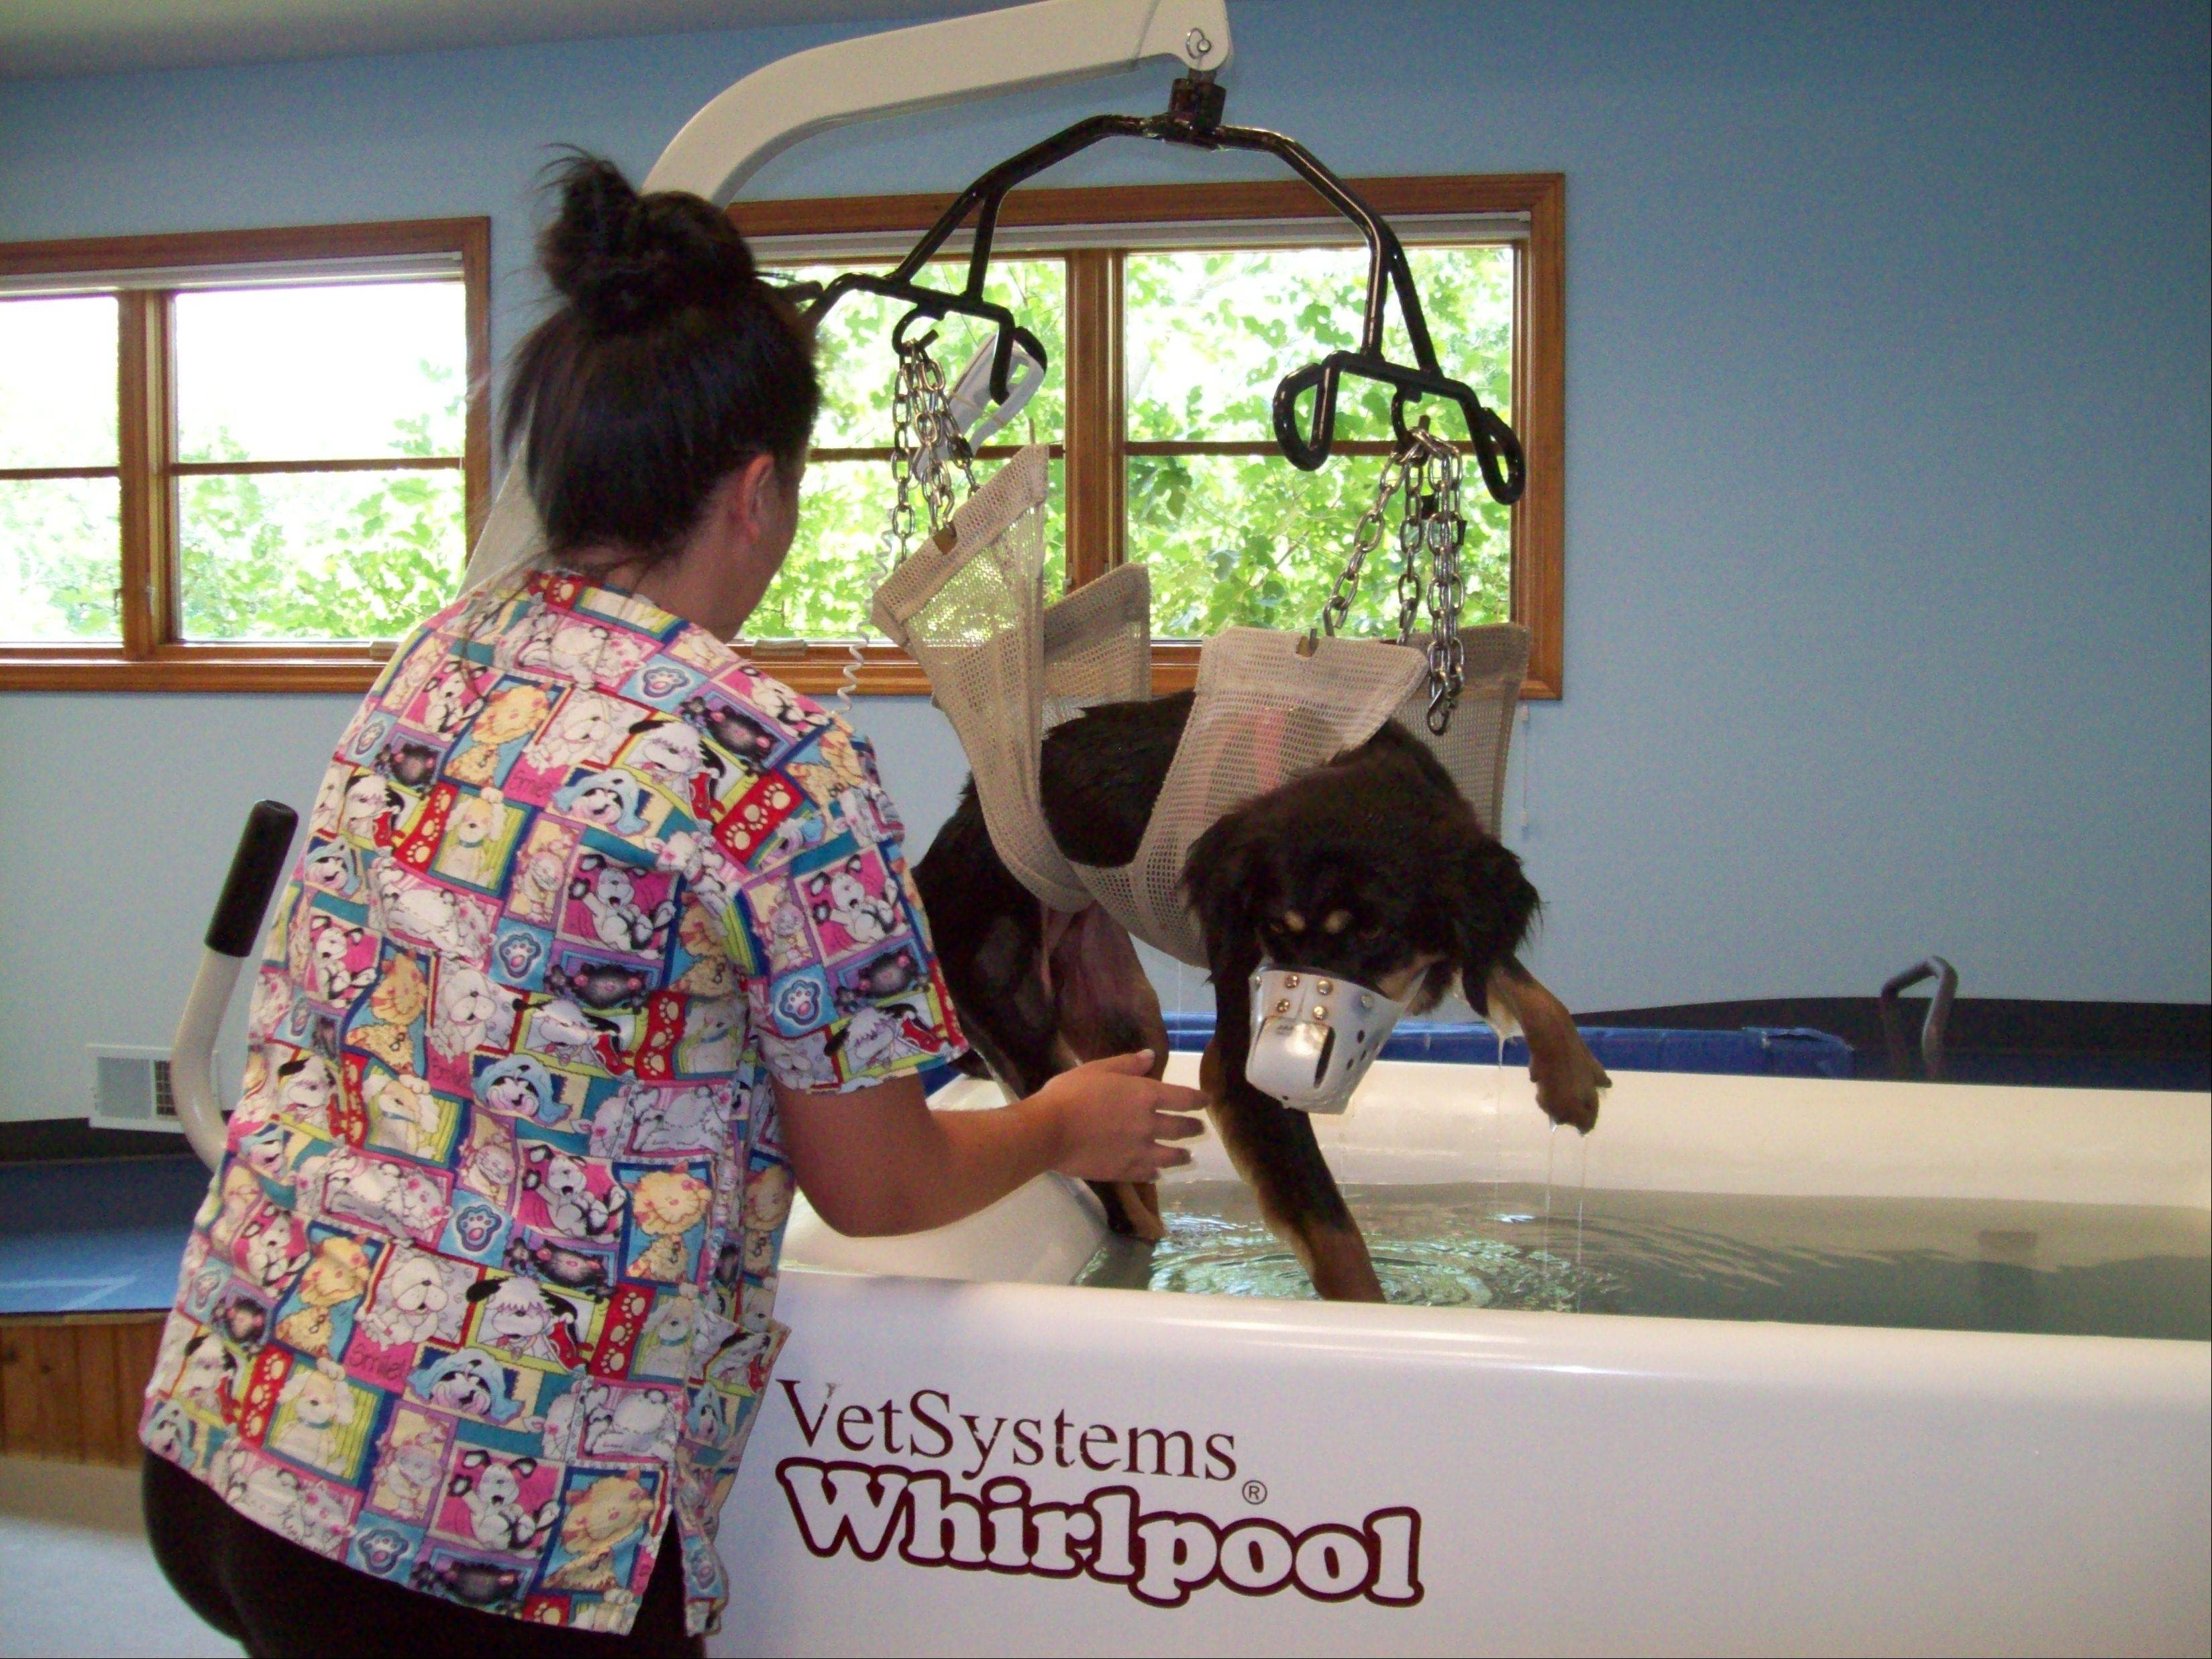 This whirlpool bath at the TOPS Veterinary Rehabilitation center in Grayslake is just one of many therapies for Sadie, a mother dog who was shot in the head and back and left to die.